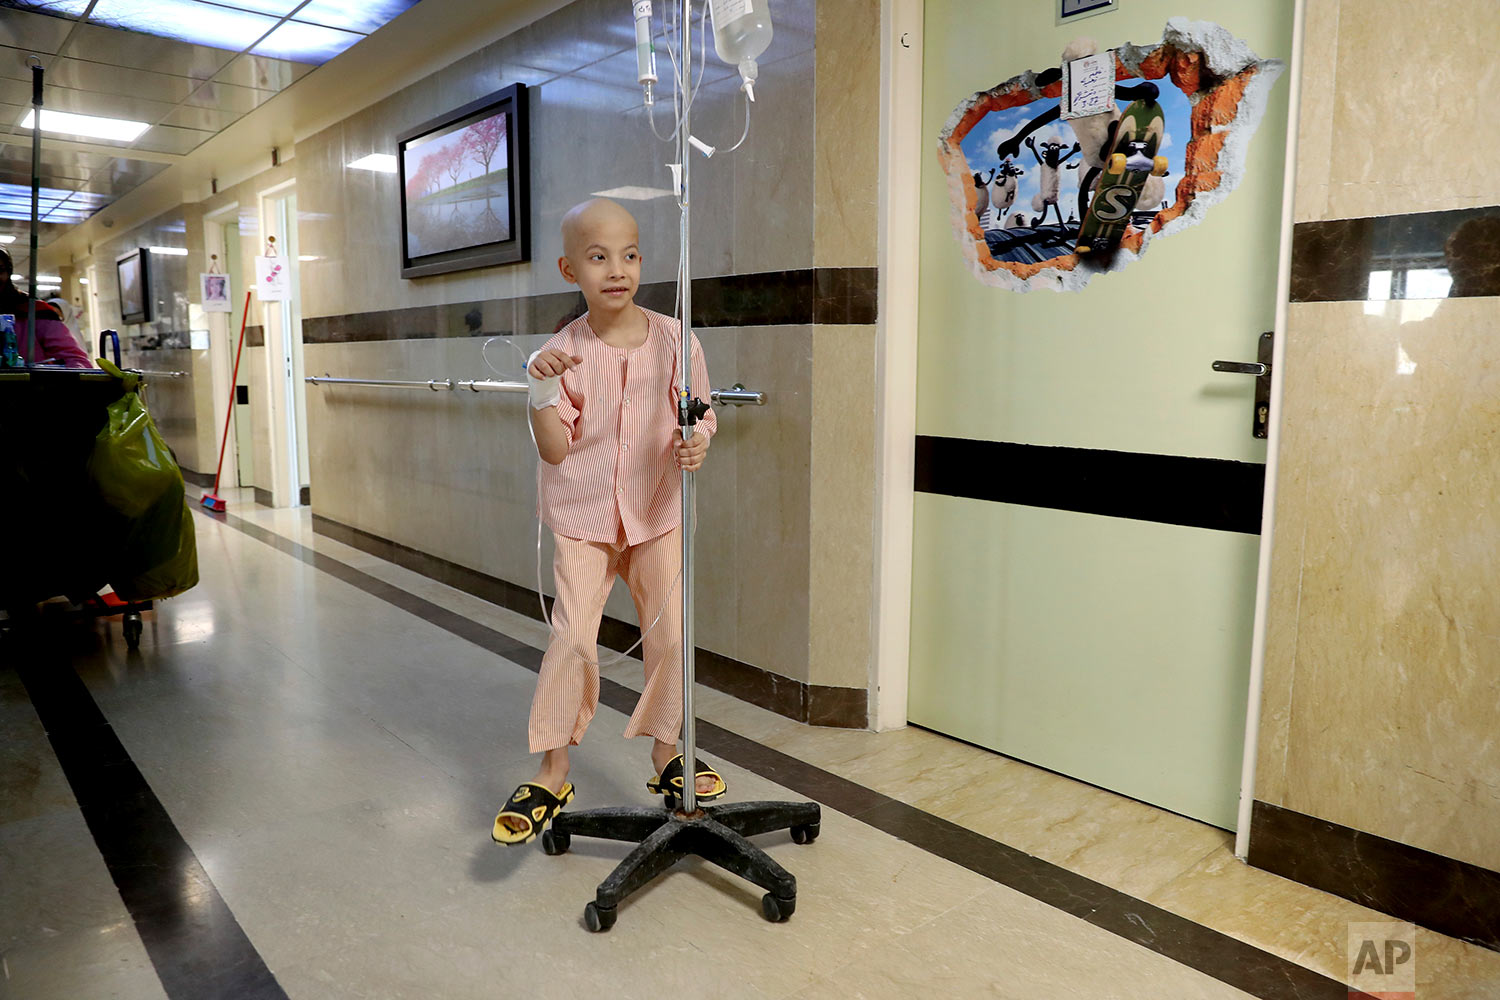 Taha Shakouri, an 8-year-old boy suffering from liver cancer, plays at Mahak Center's, Hospital in Tehran, Iran. (AP Photo/Ebrahim Noroozi)